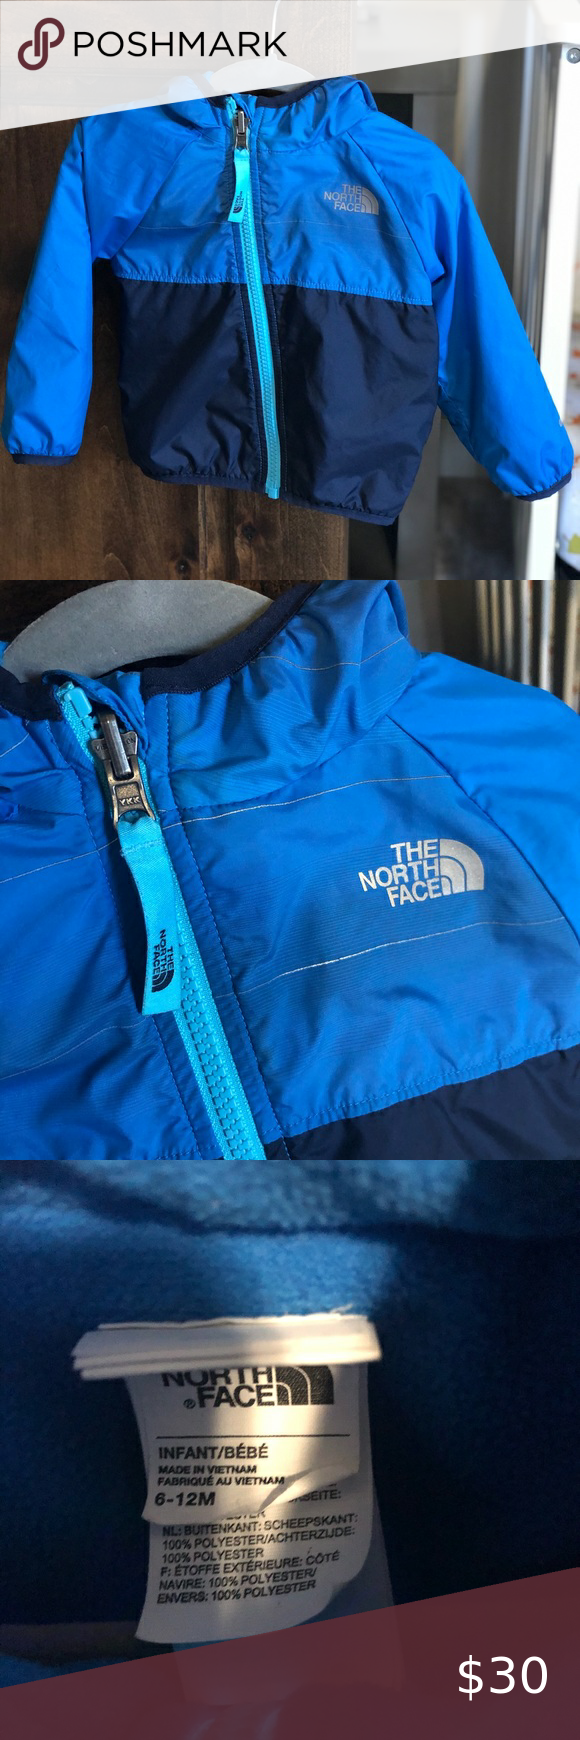 Reversible 6 12 Month Baby Boy North Face Jacket North Face Jacket Baby Month By Month The North Face [ 1740 x 580 Pixel ]